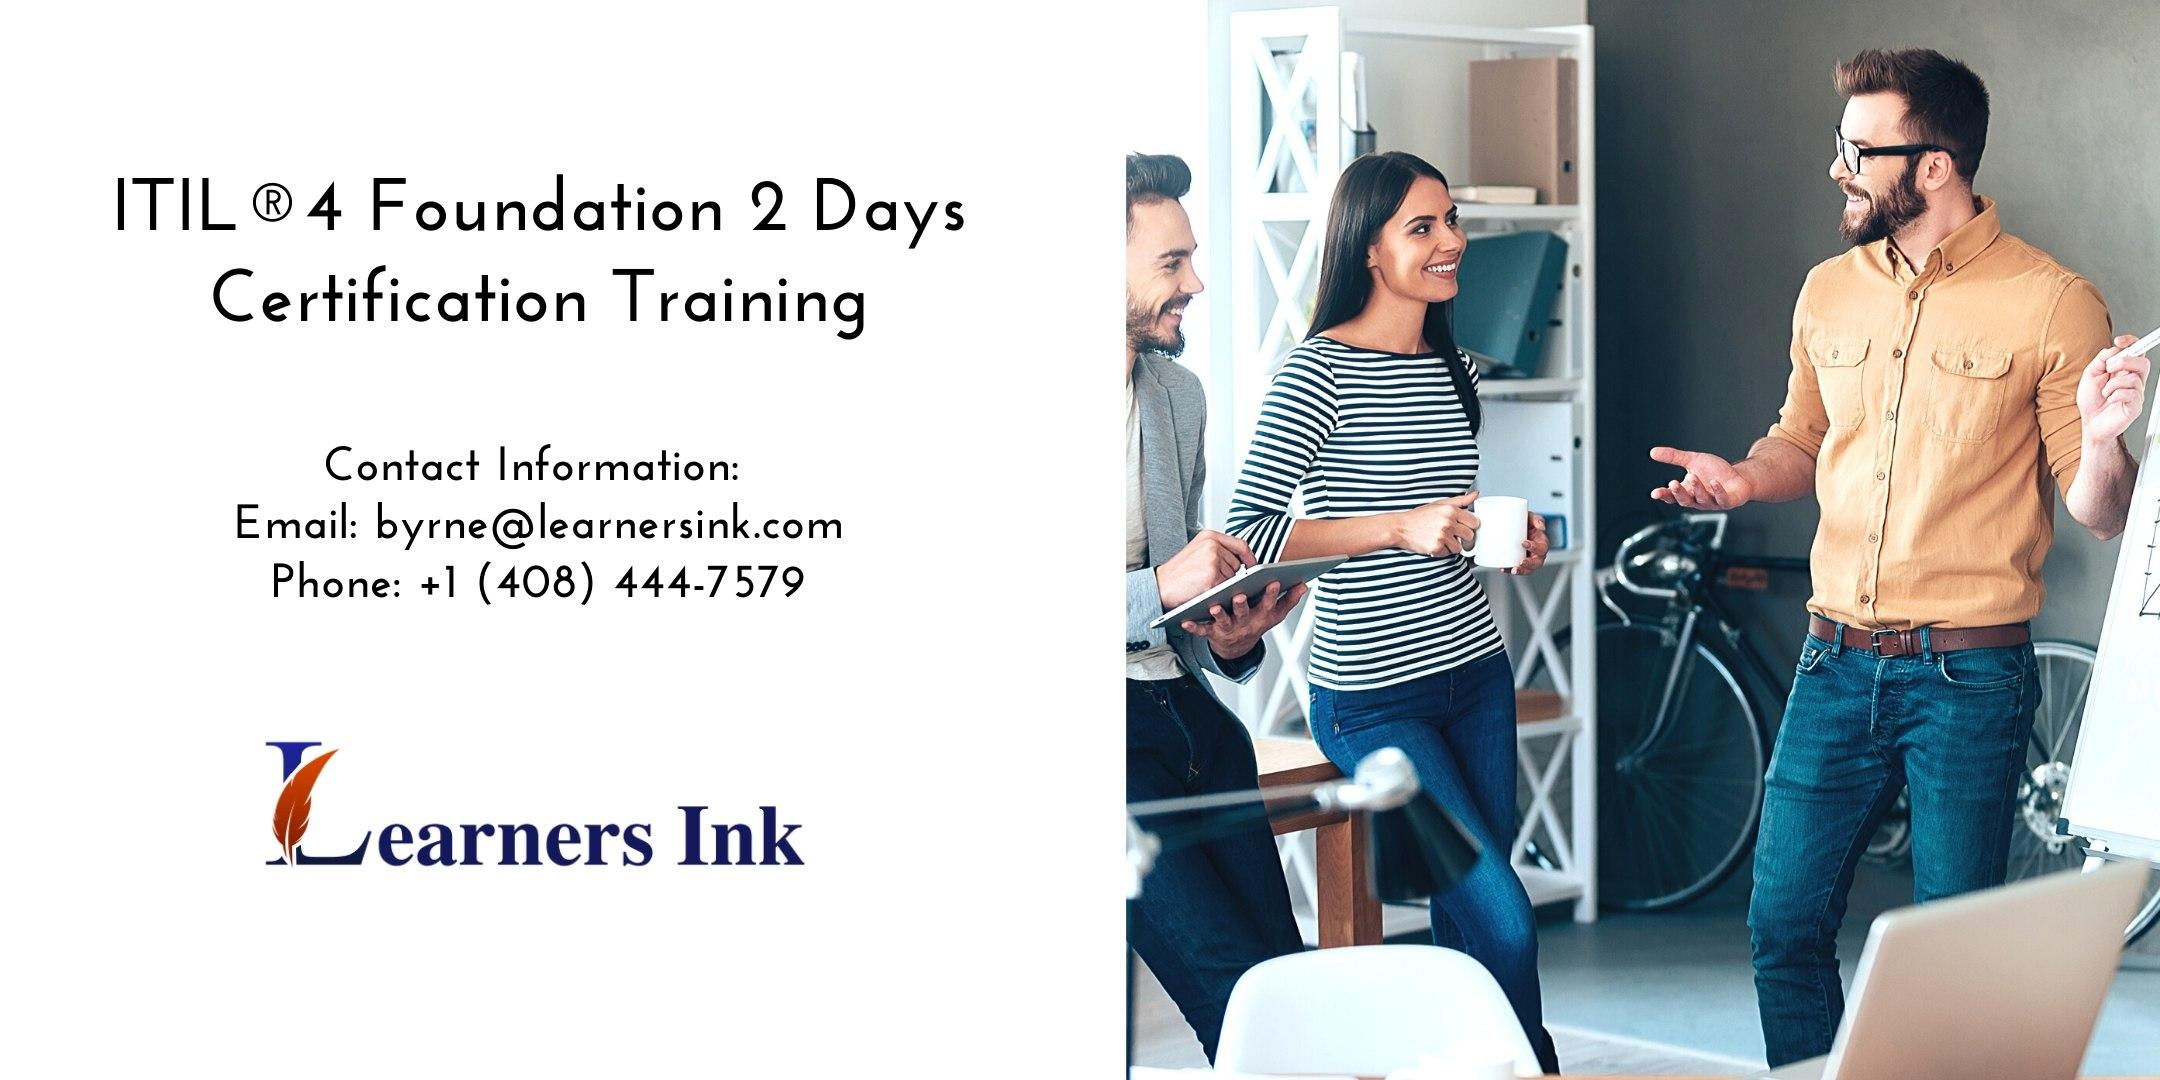 ITIL®4 Foundation 2 Days Certification Training in Colorado Spring